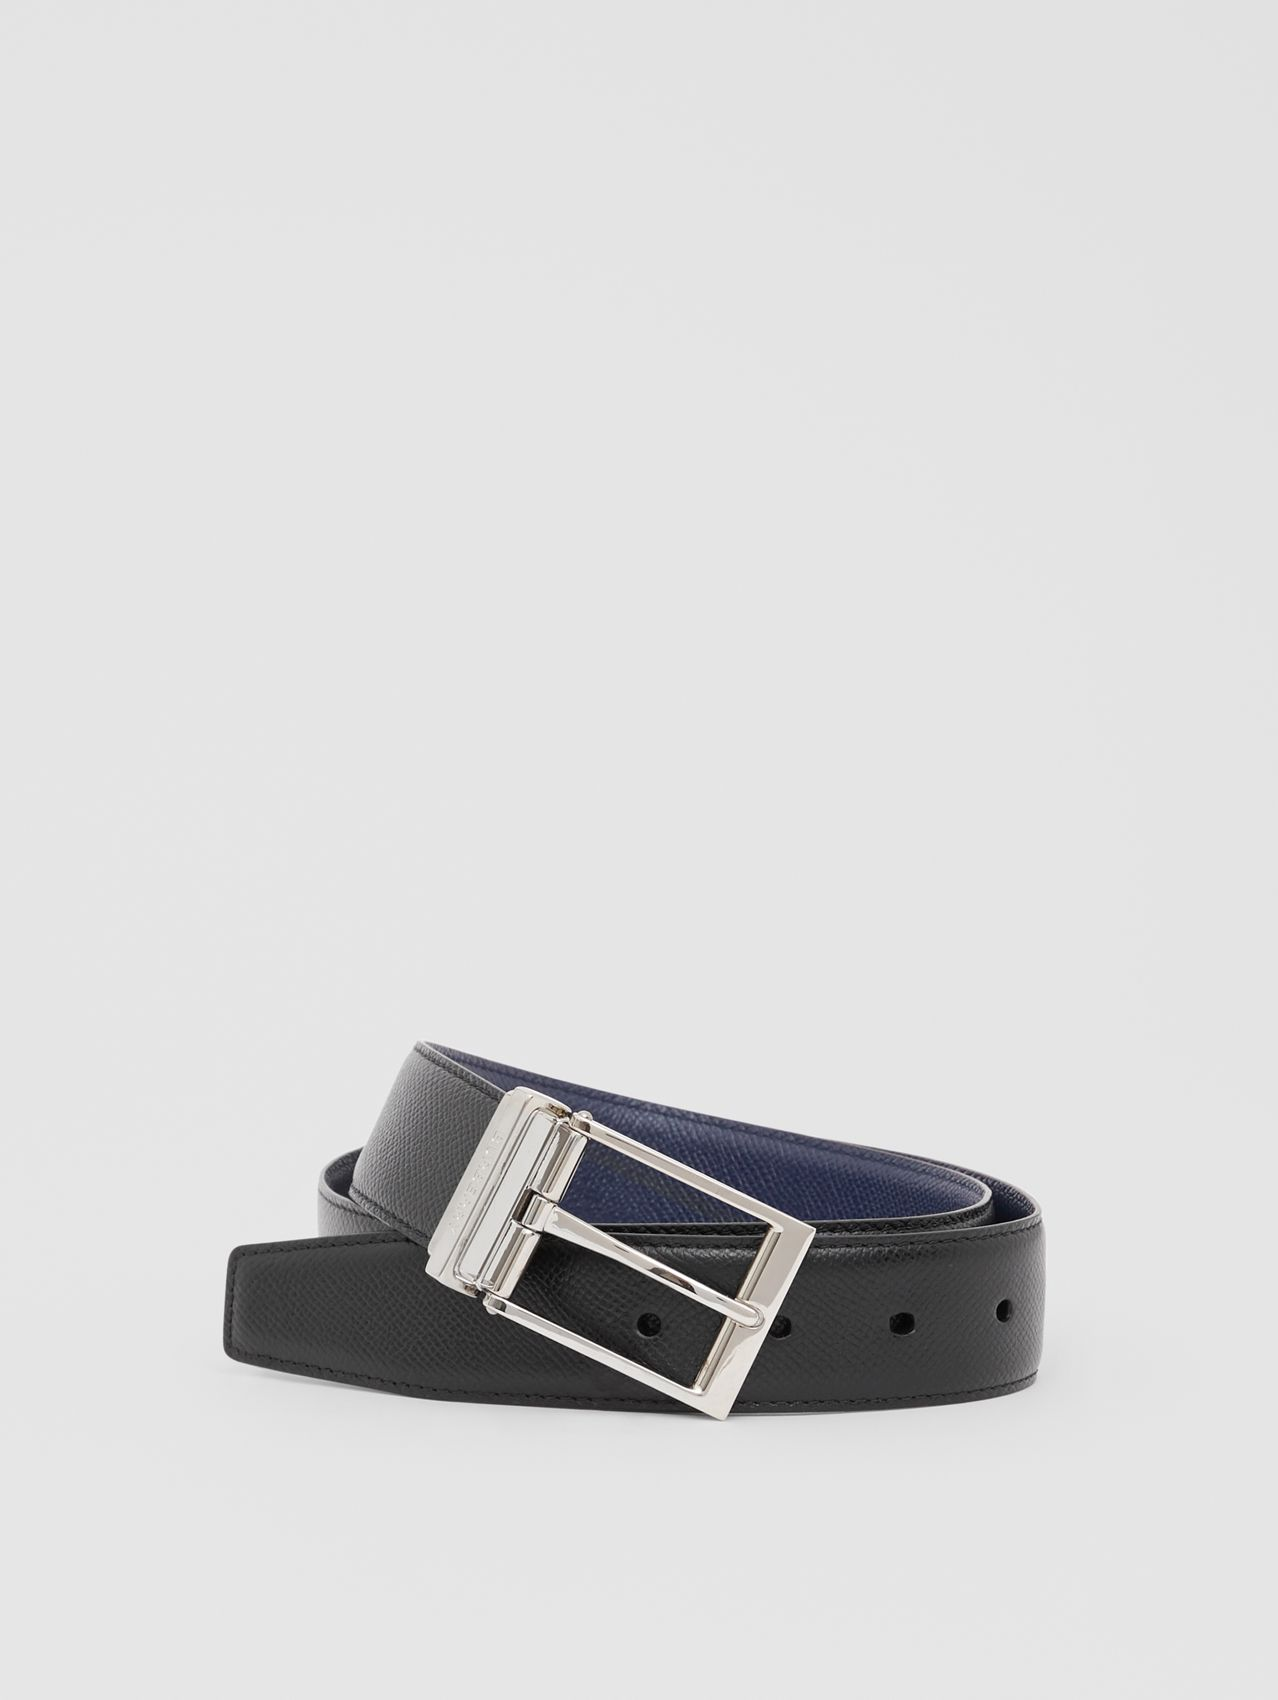 Reversible Grainy Leather Belt in Navy/black